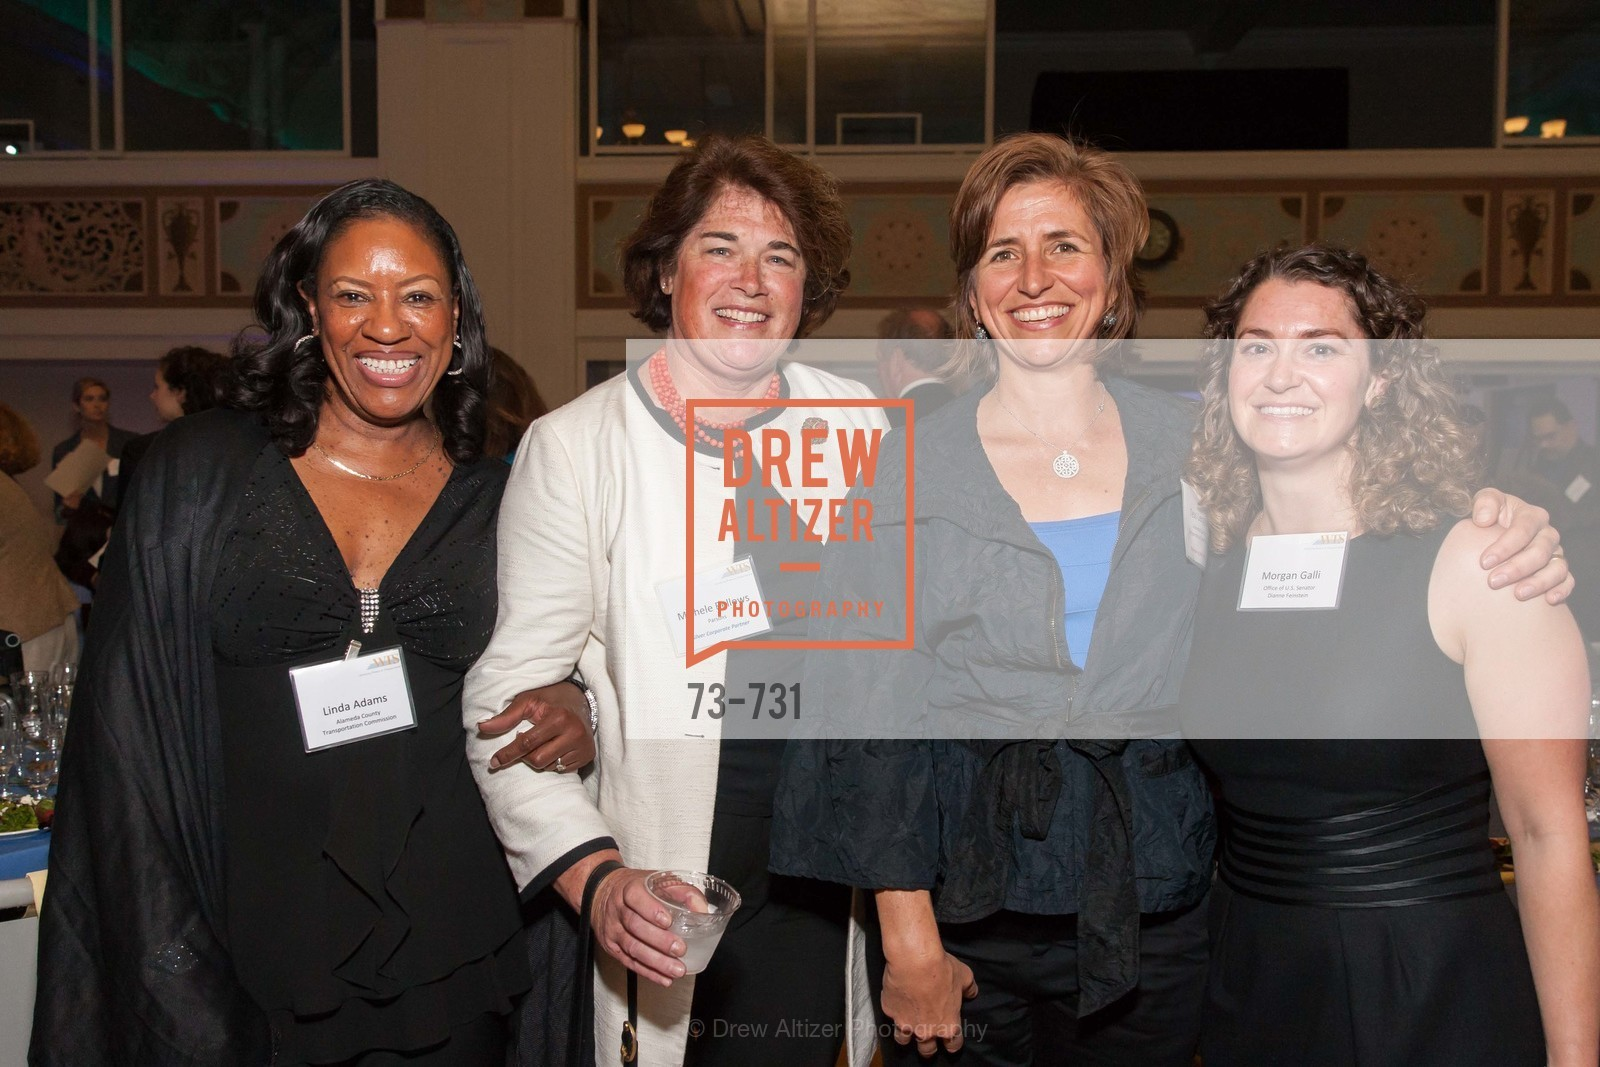 Linda Adams, Michele Bellows, Tess Lengyel, Morgan Galli, WOMEN'S TRANSPORTATION SEMINAR SF Bay Area Chapter Annual Scholarship Awards, US, May 15th, 2015,Drew Altizer, Drew Altizer Photography, full-service agency, private events, San Francisco photographer, photographer california